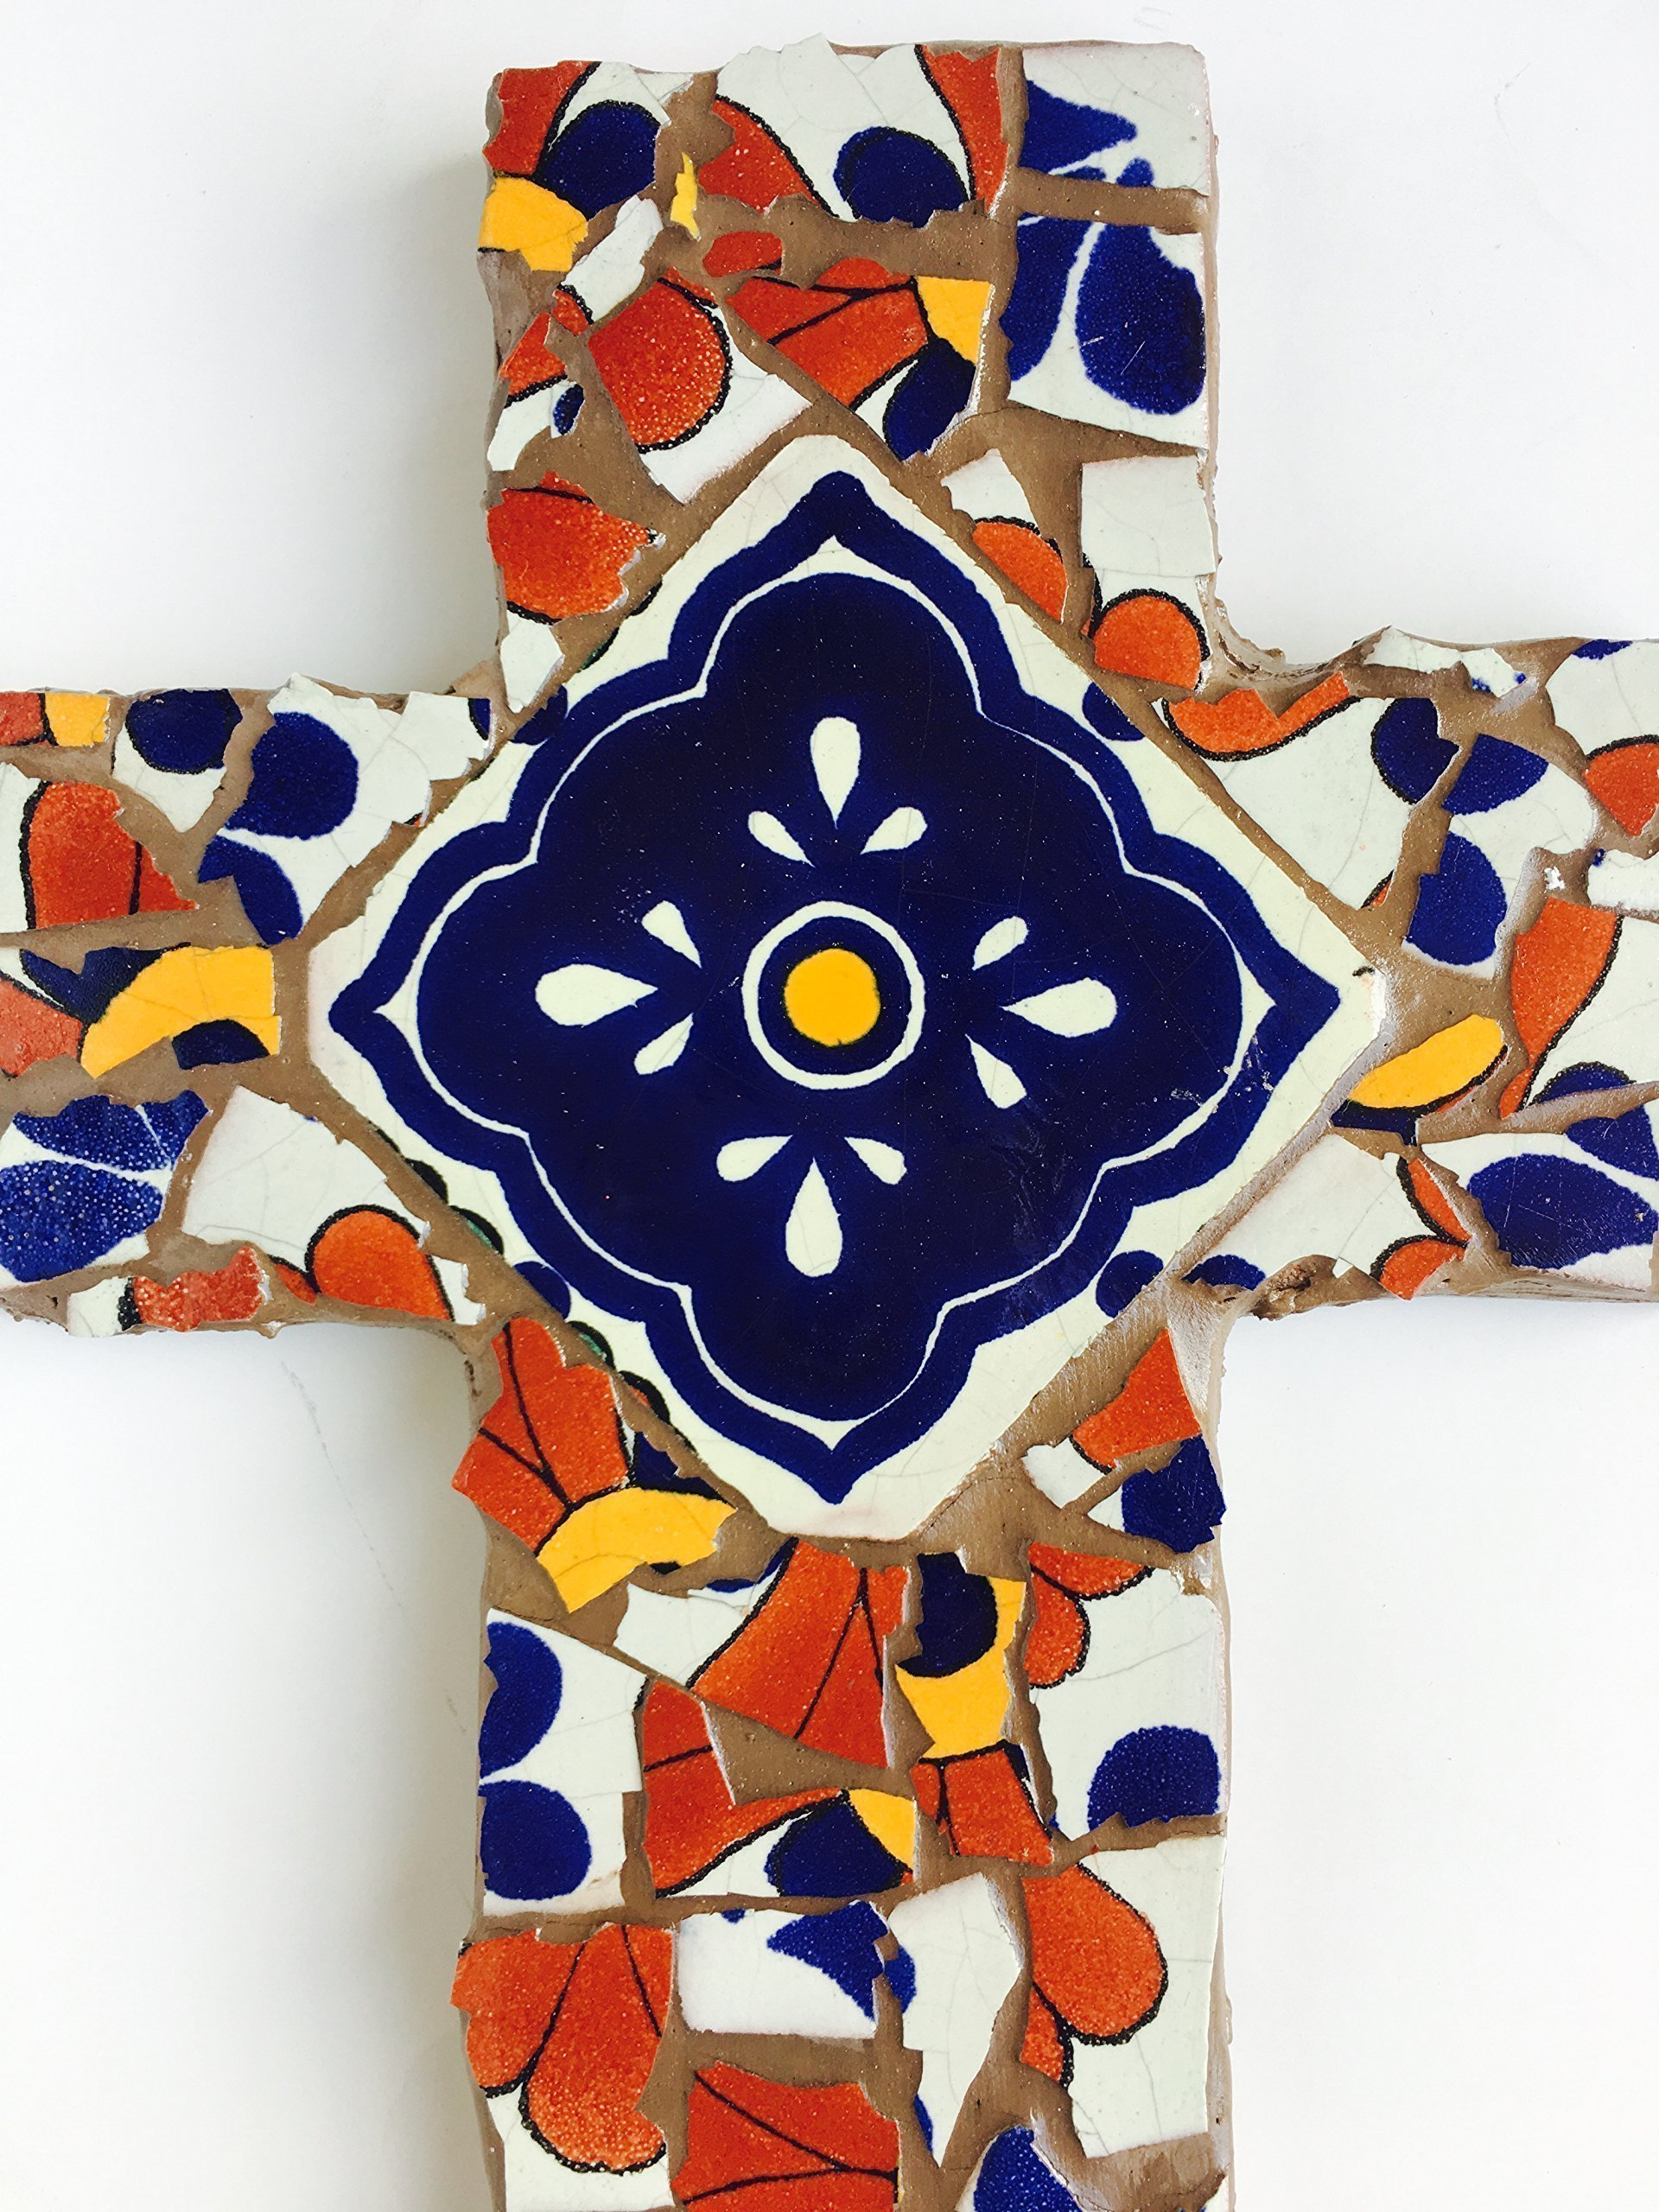 Mexican Tile Talavera Mosaic Wall Cross 9 inch X 6 inch Blue Red White and Yellow Mexican Ceramic tile,